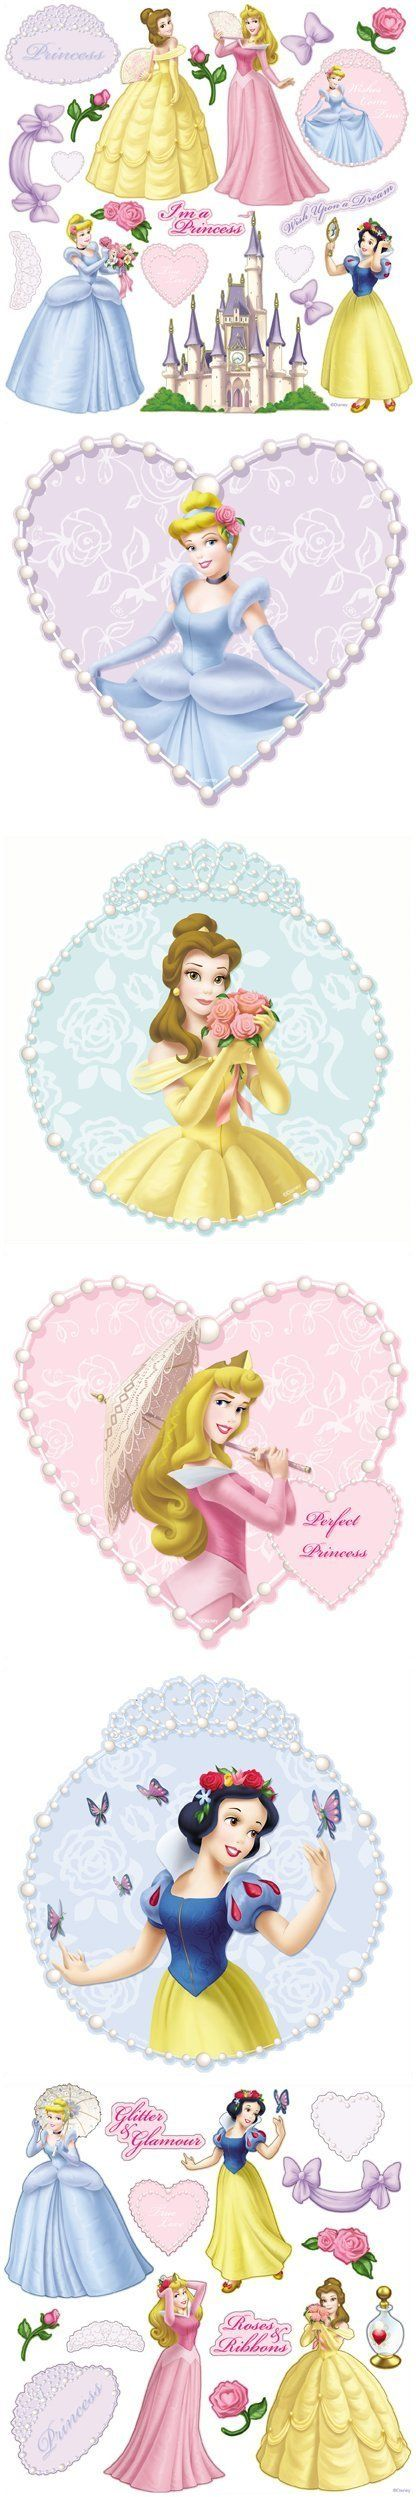 Disney Princess and Pearls Decorating Kit - Wall Sticker Outlet